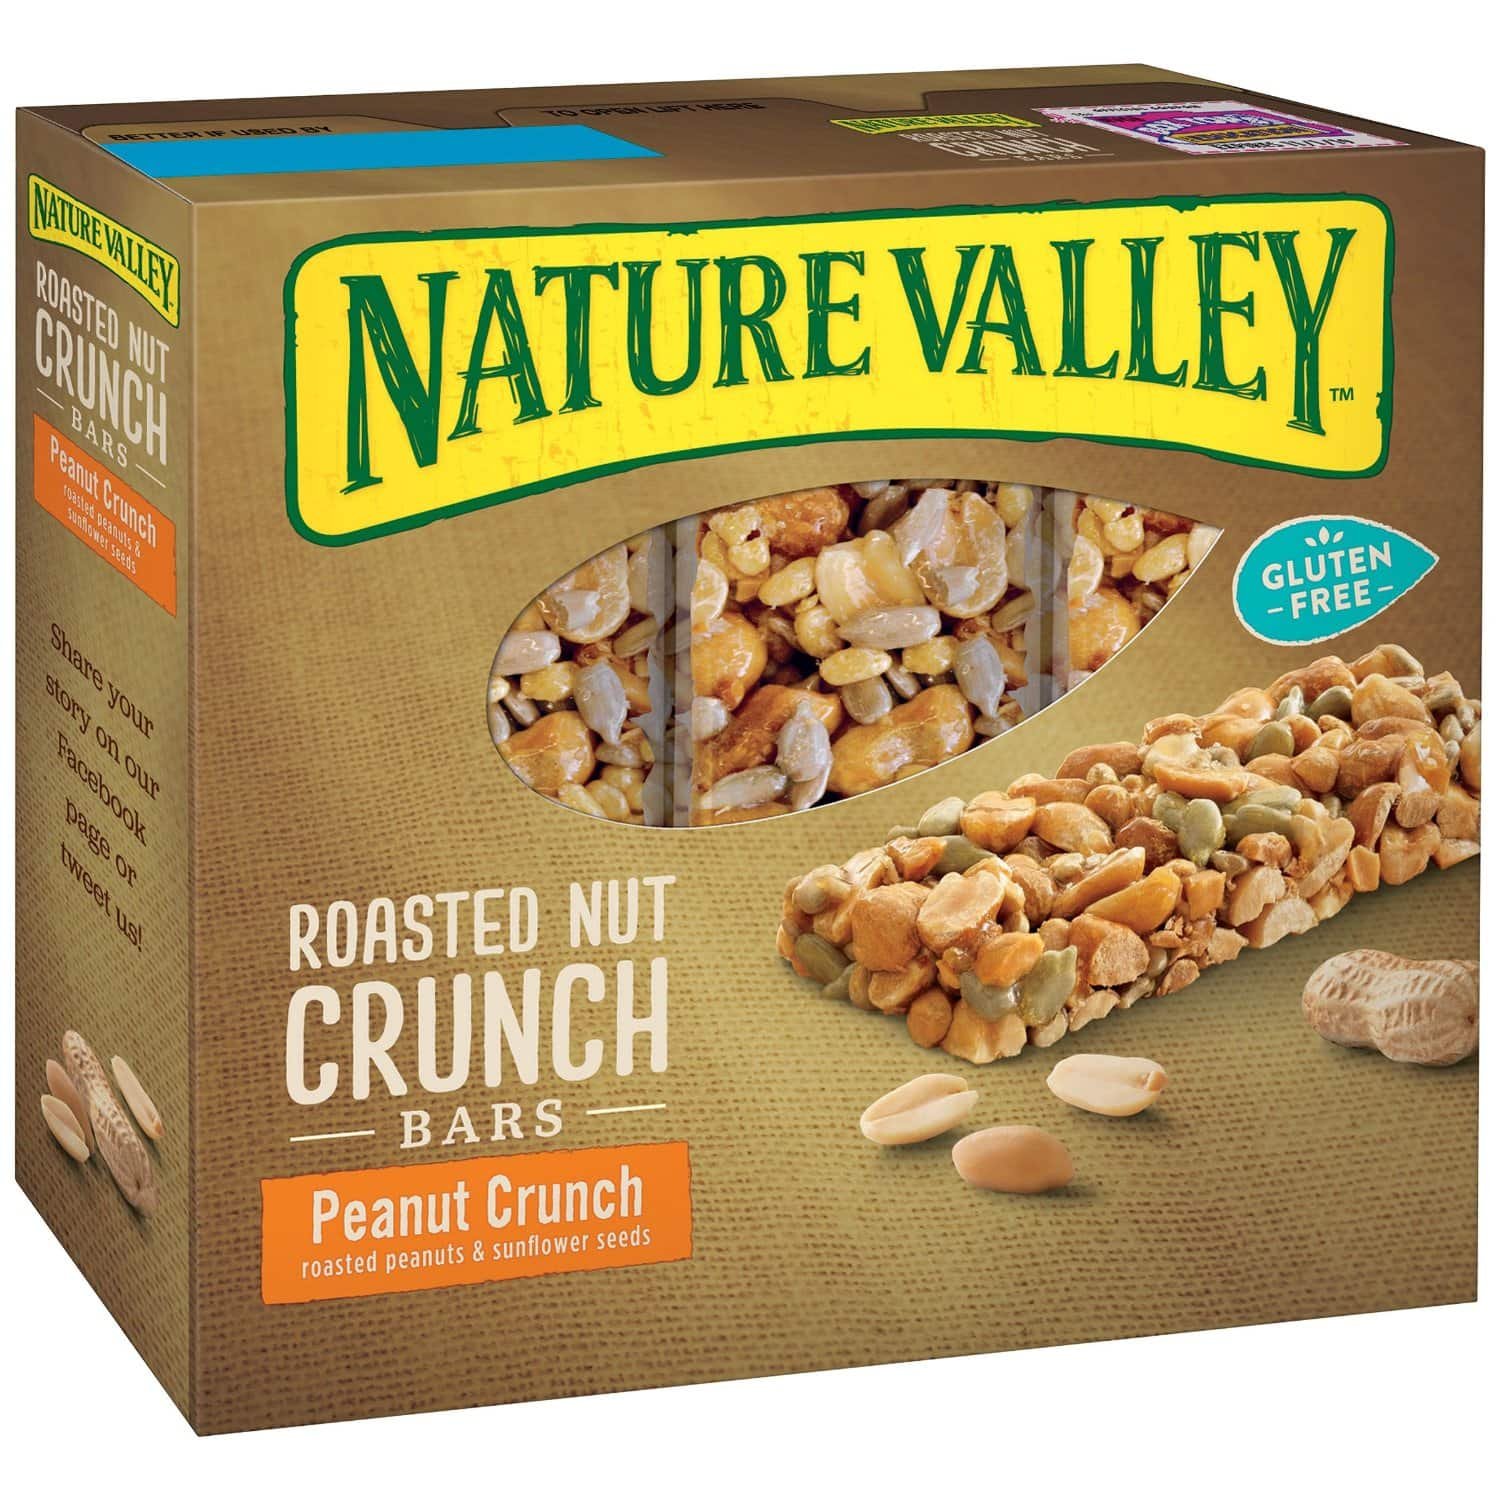 Nature Valley Roasted Nut Crunch (6 bars) $2.85 or less, Amazon S&S